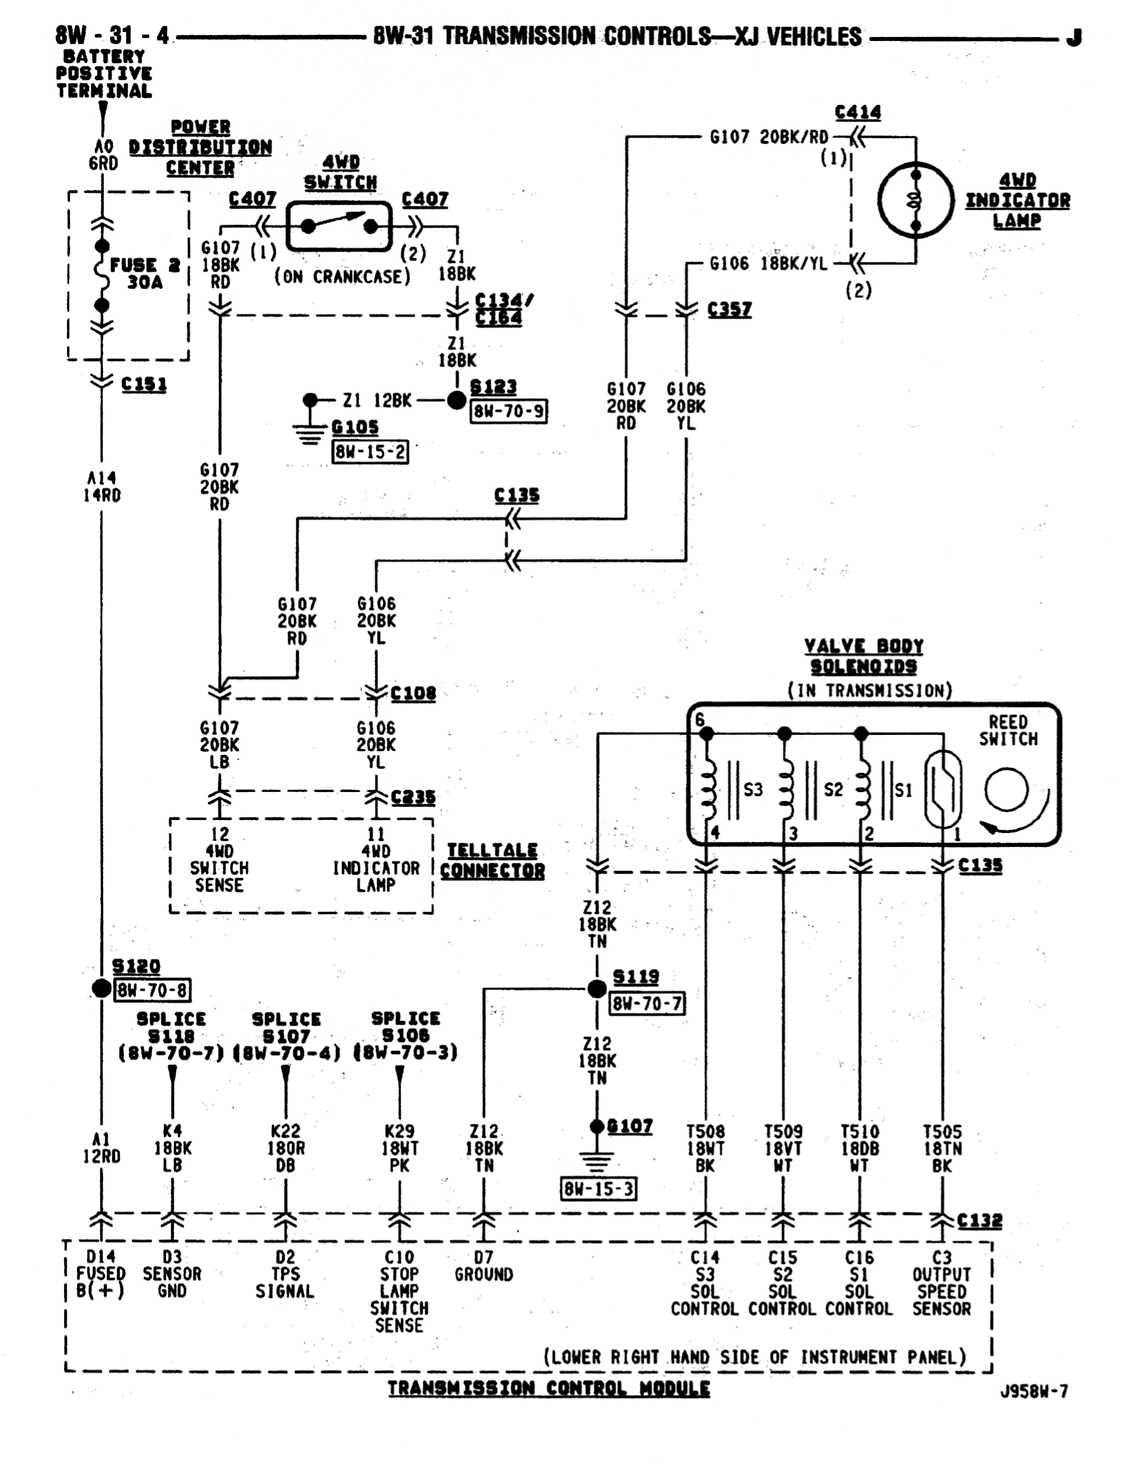 Tcu Pin8 Wiring Problem